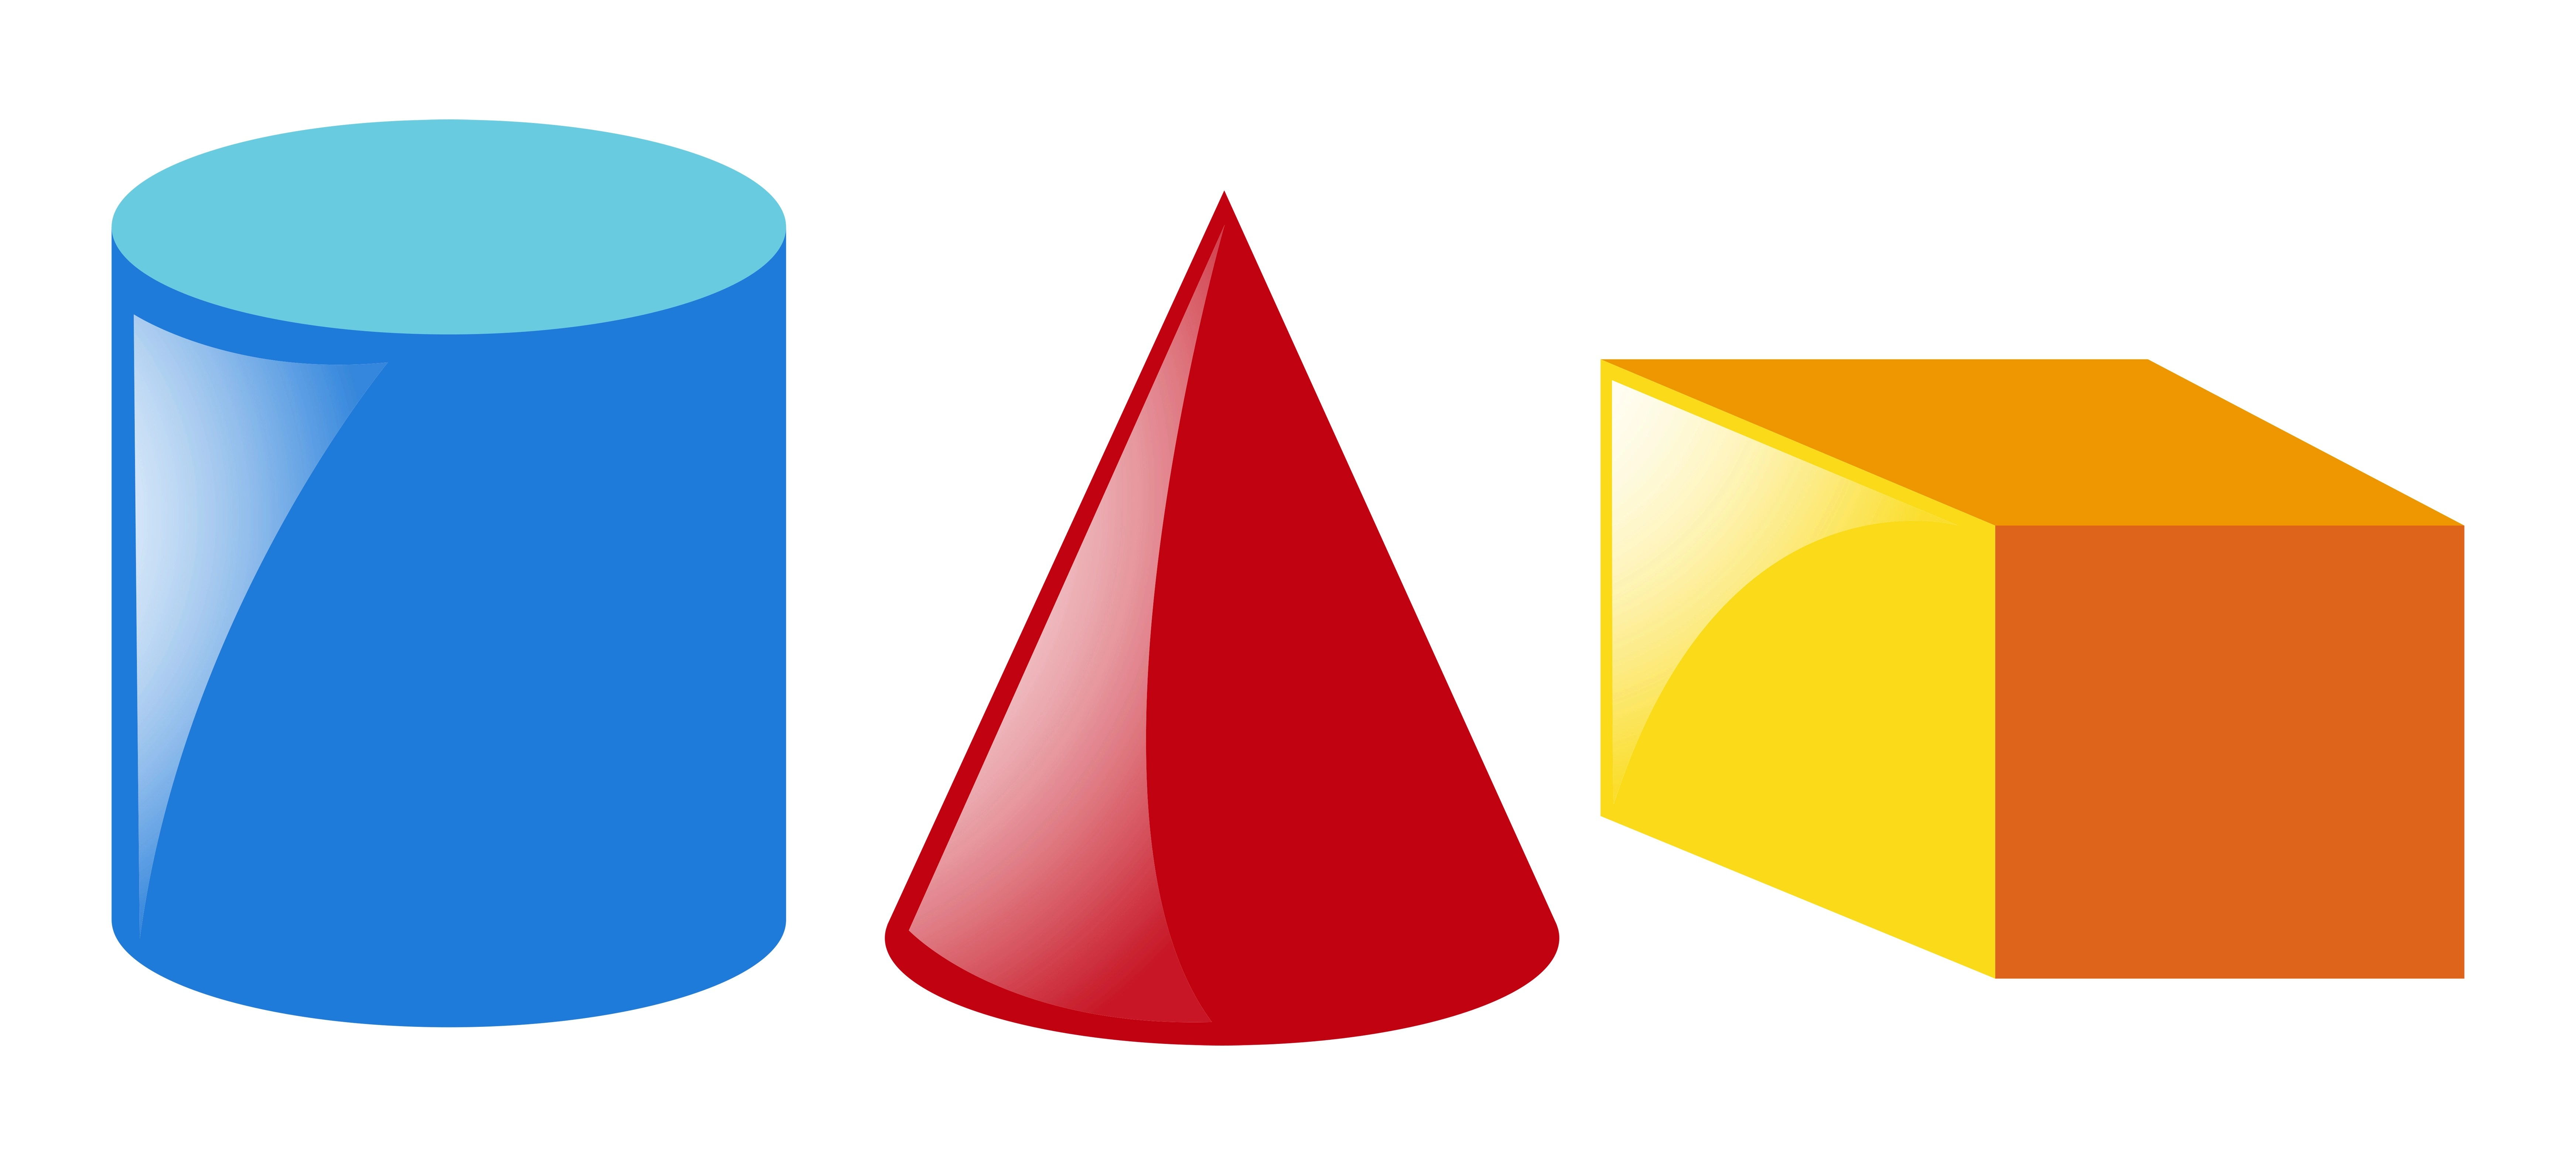 Geometric Shapes In Three Colors